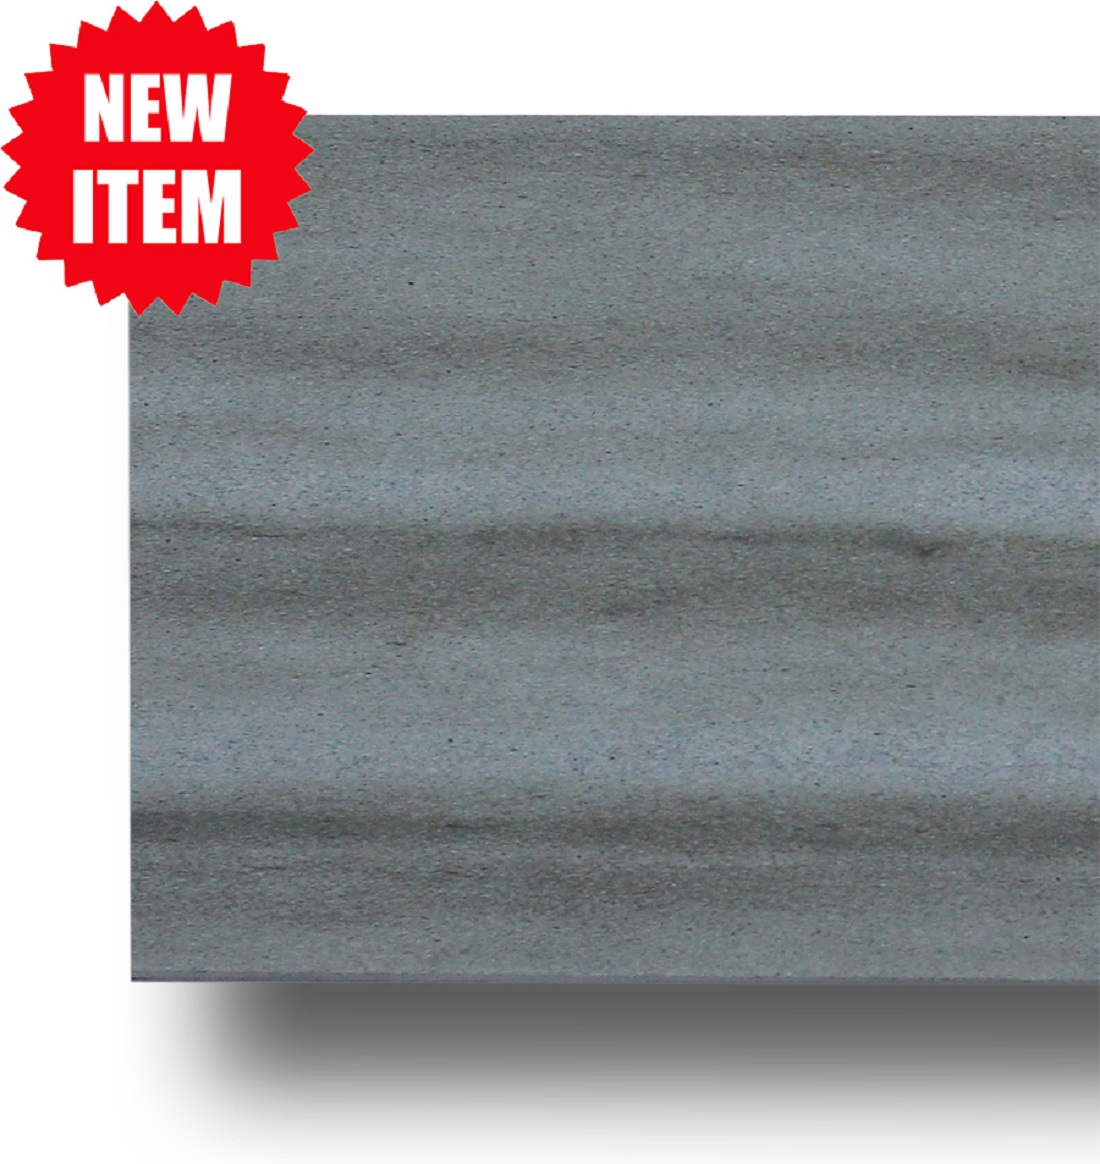 Bali Green Ocean Wave Sandstone Pool Coping - Premium Quality